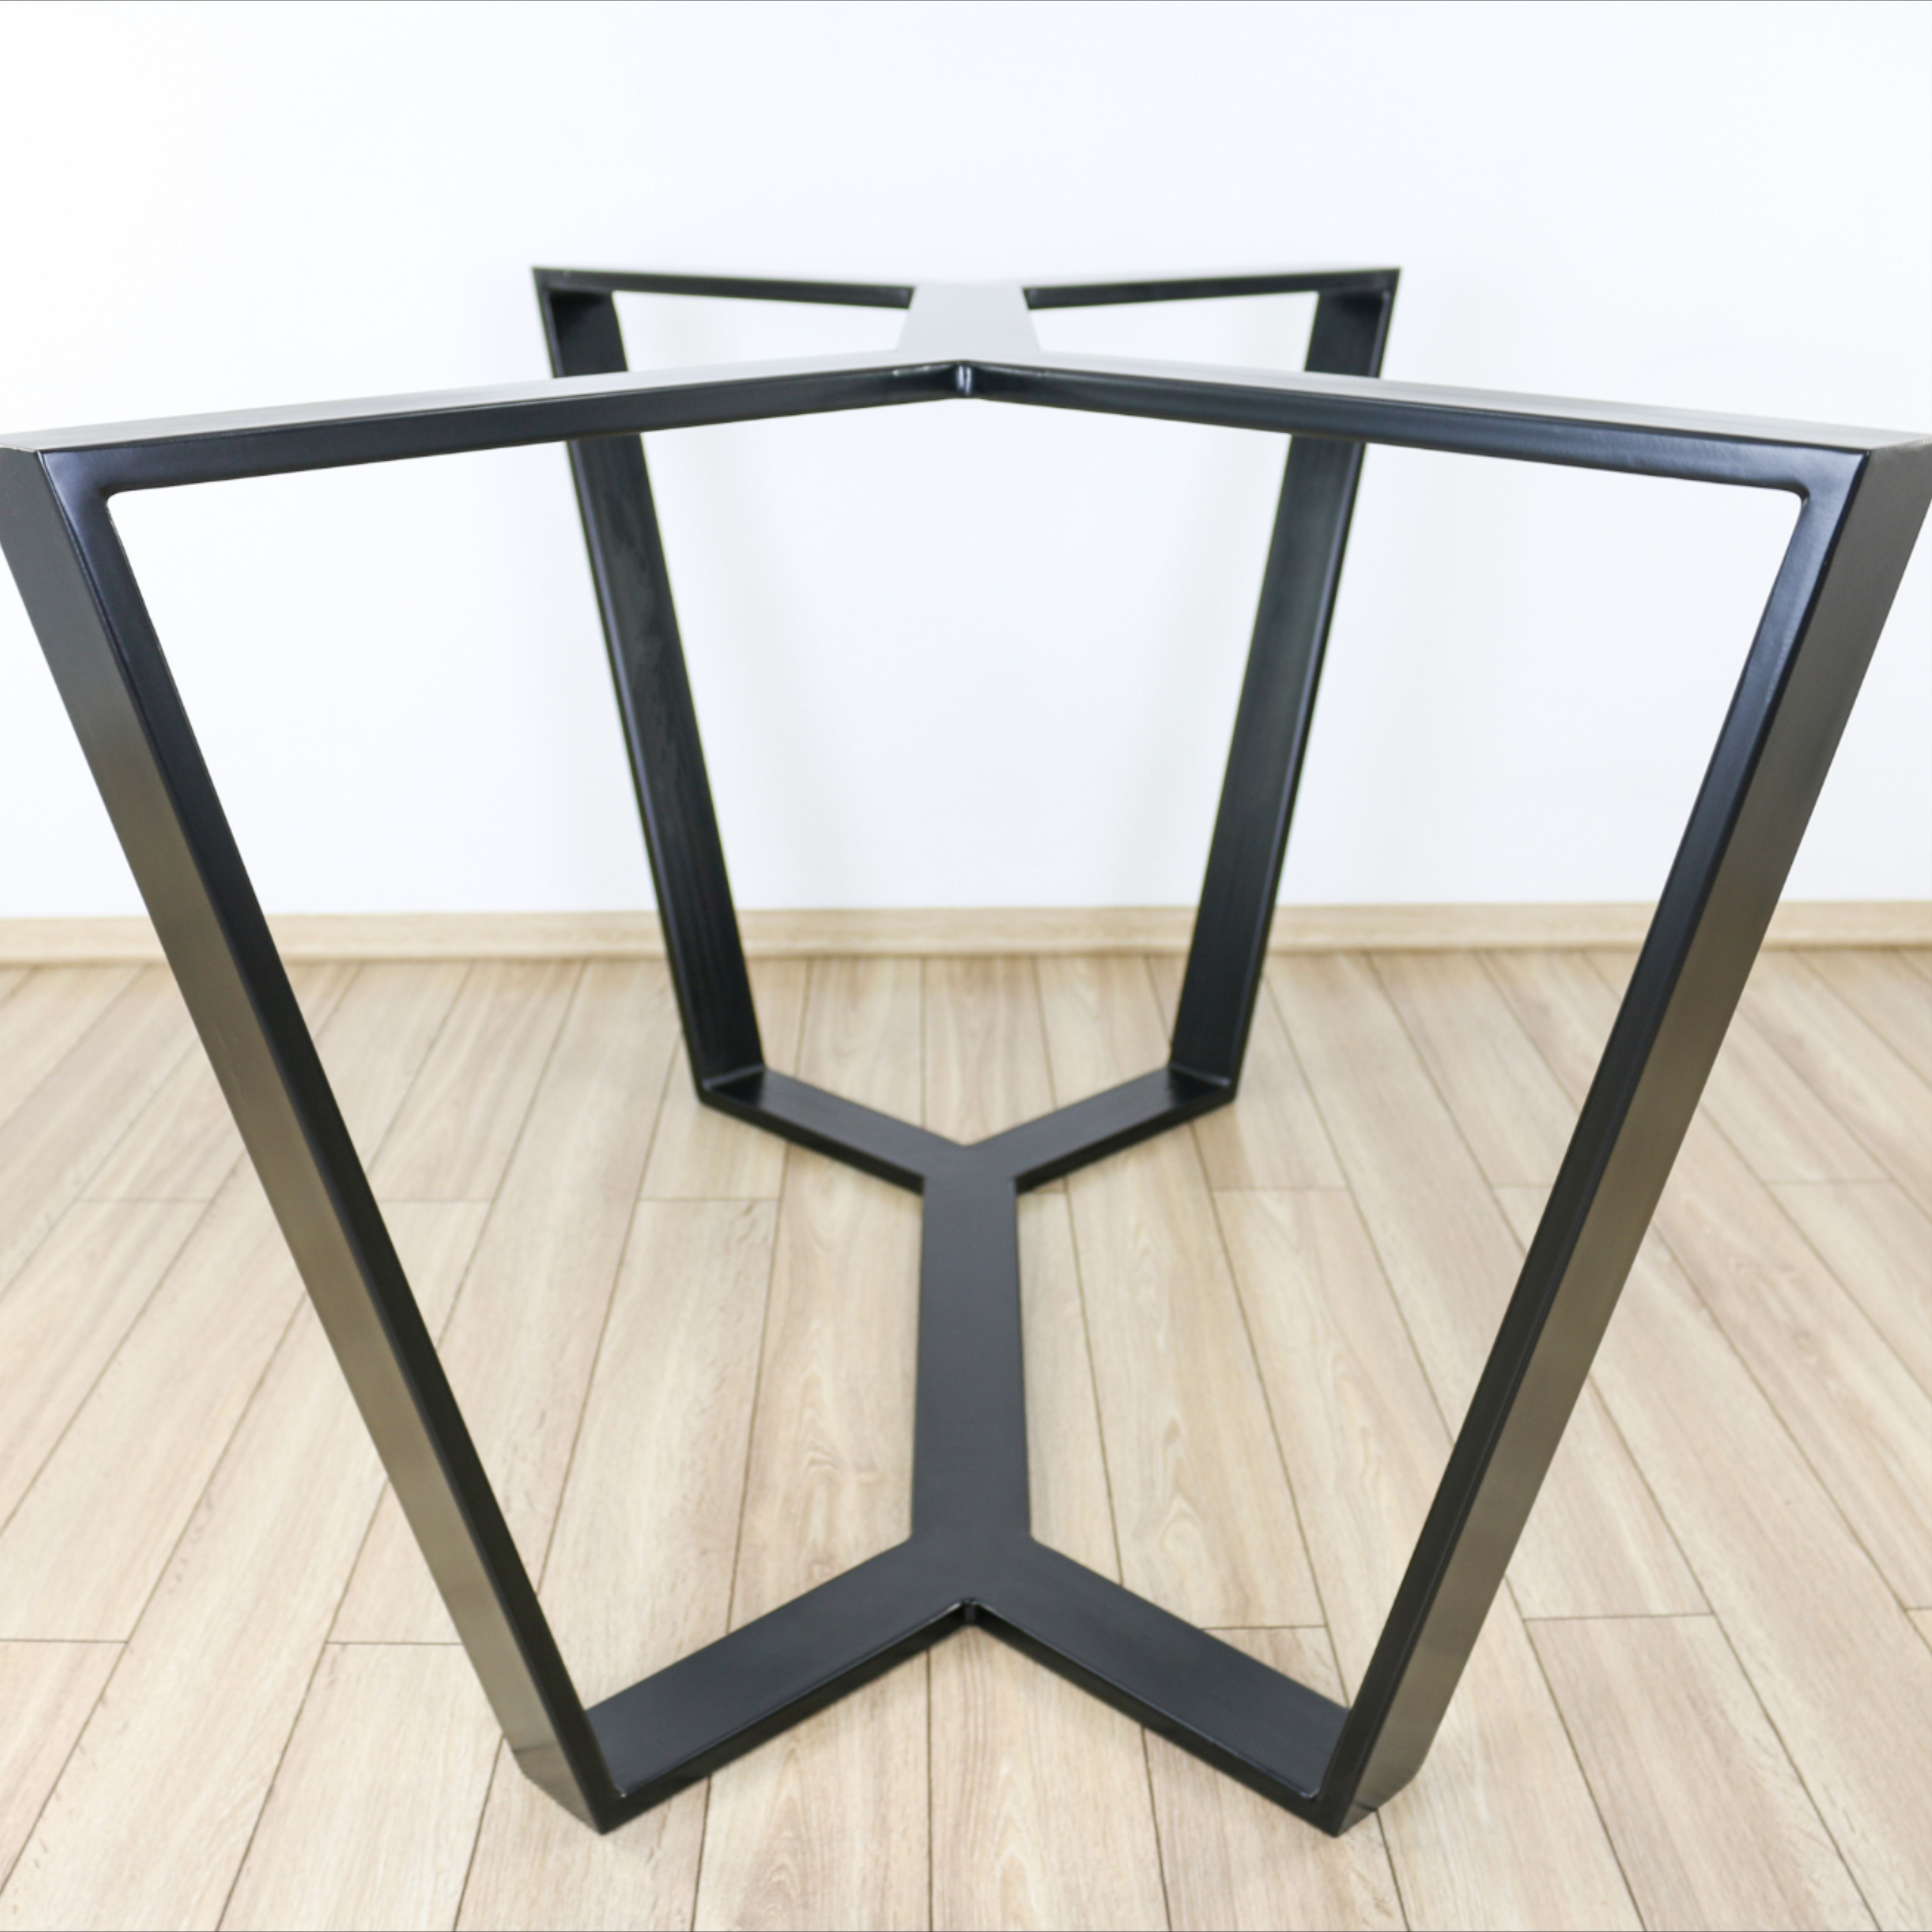 Steel Table Base Dining Table Base Industrial Steel Table Leg Modern Table Base Unique Metal Table Frame For Glass Wood Marble Quartz Steel Table Base Metal Table Base Metal Table Frame